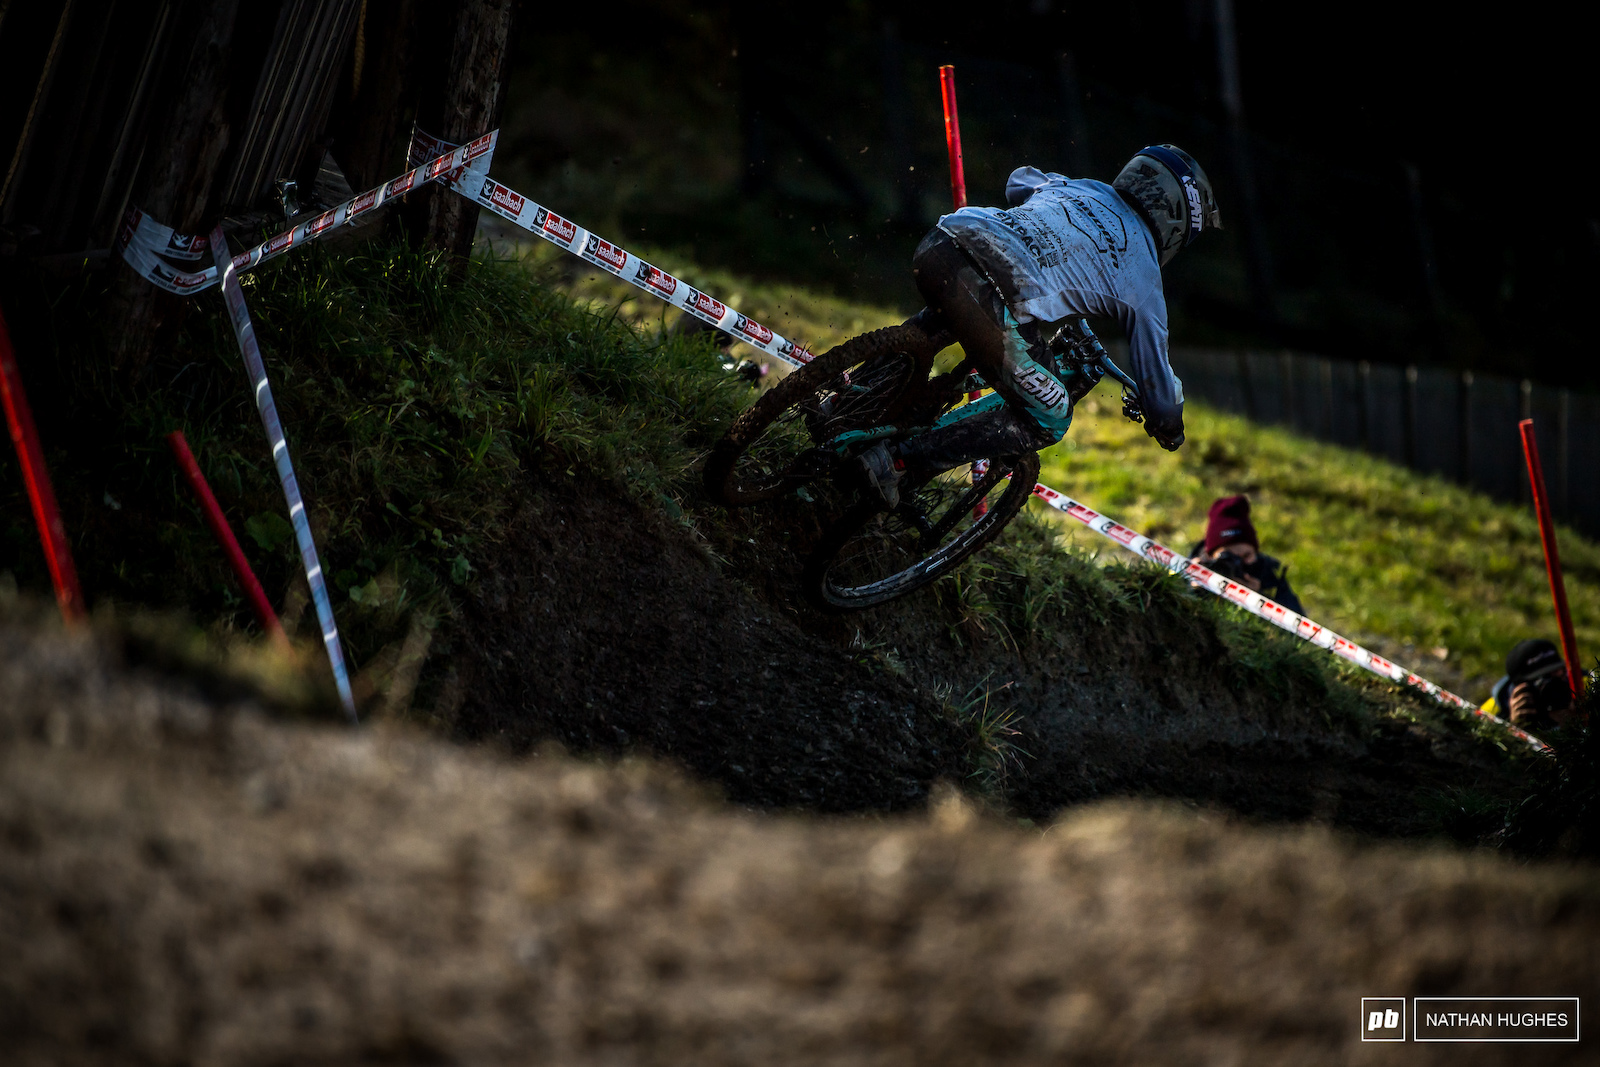 Propain s Luke Meier-Smith will surely be disappointed with anything short of a medal in juniors this weekend.